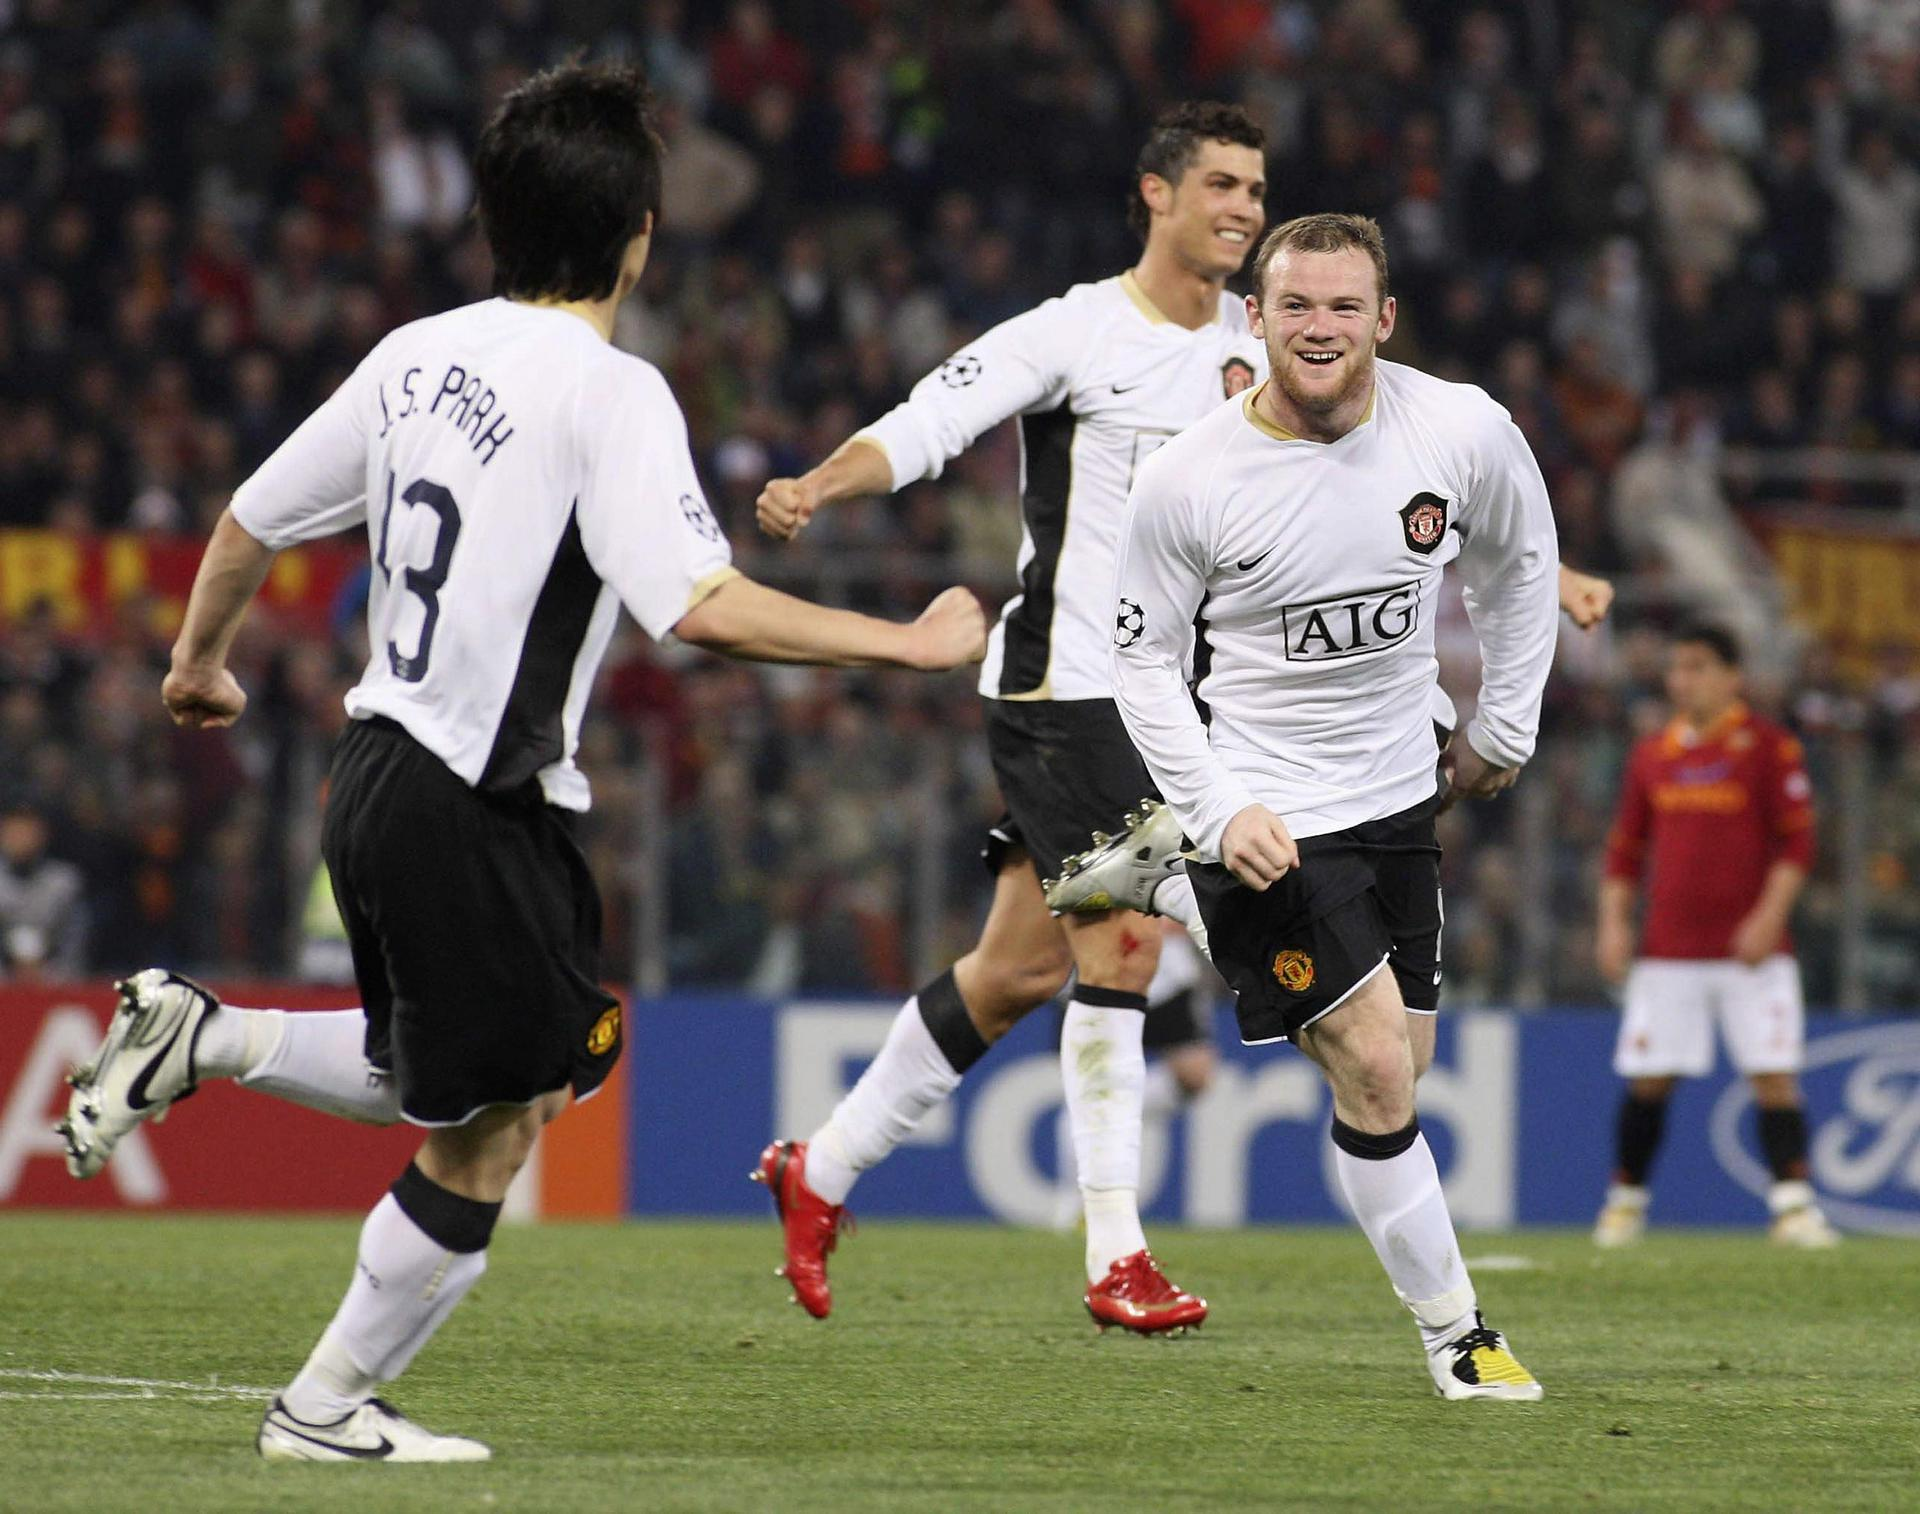 Ji-sung Park, Cristiano Ronaldo and Wayne Rooney celebrate an away goal for Manchester United against AS Roma in 2008